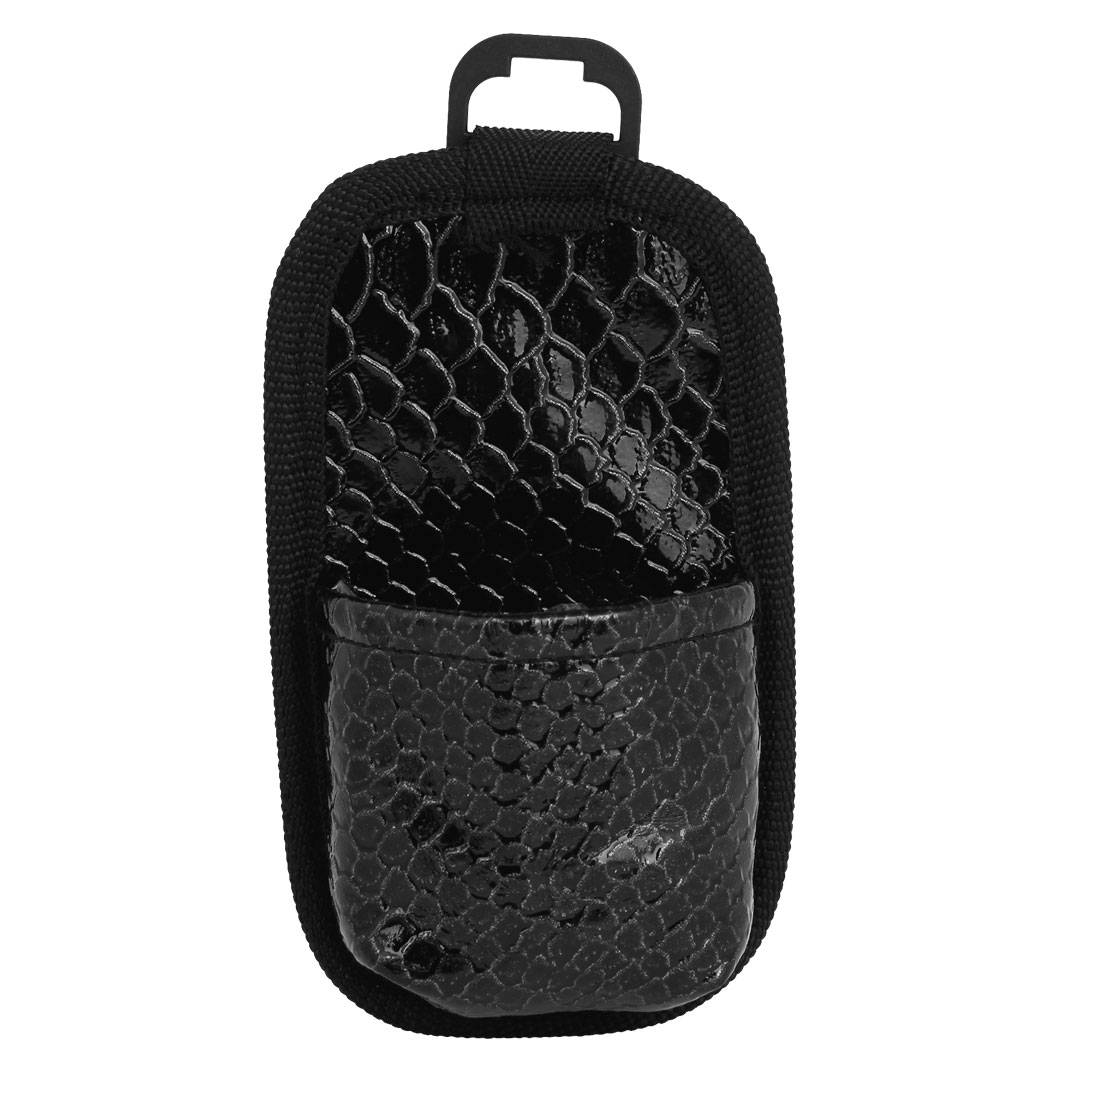 Black Faux Leather Coated Crocodile Pattern Key Phone Storage Bag for Car